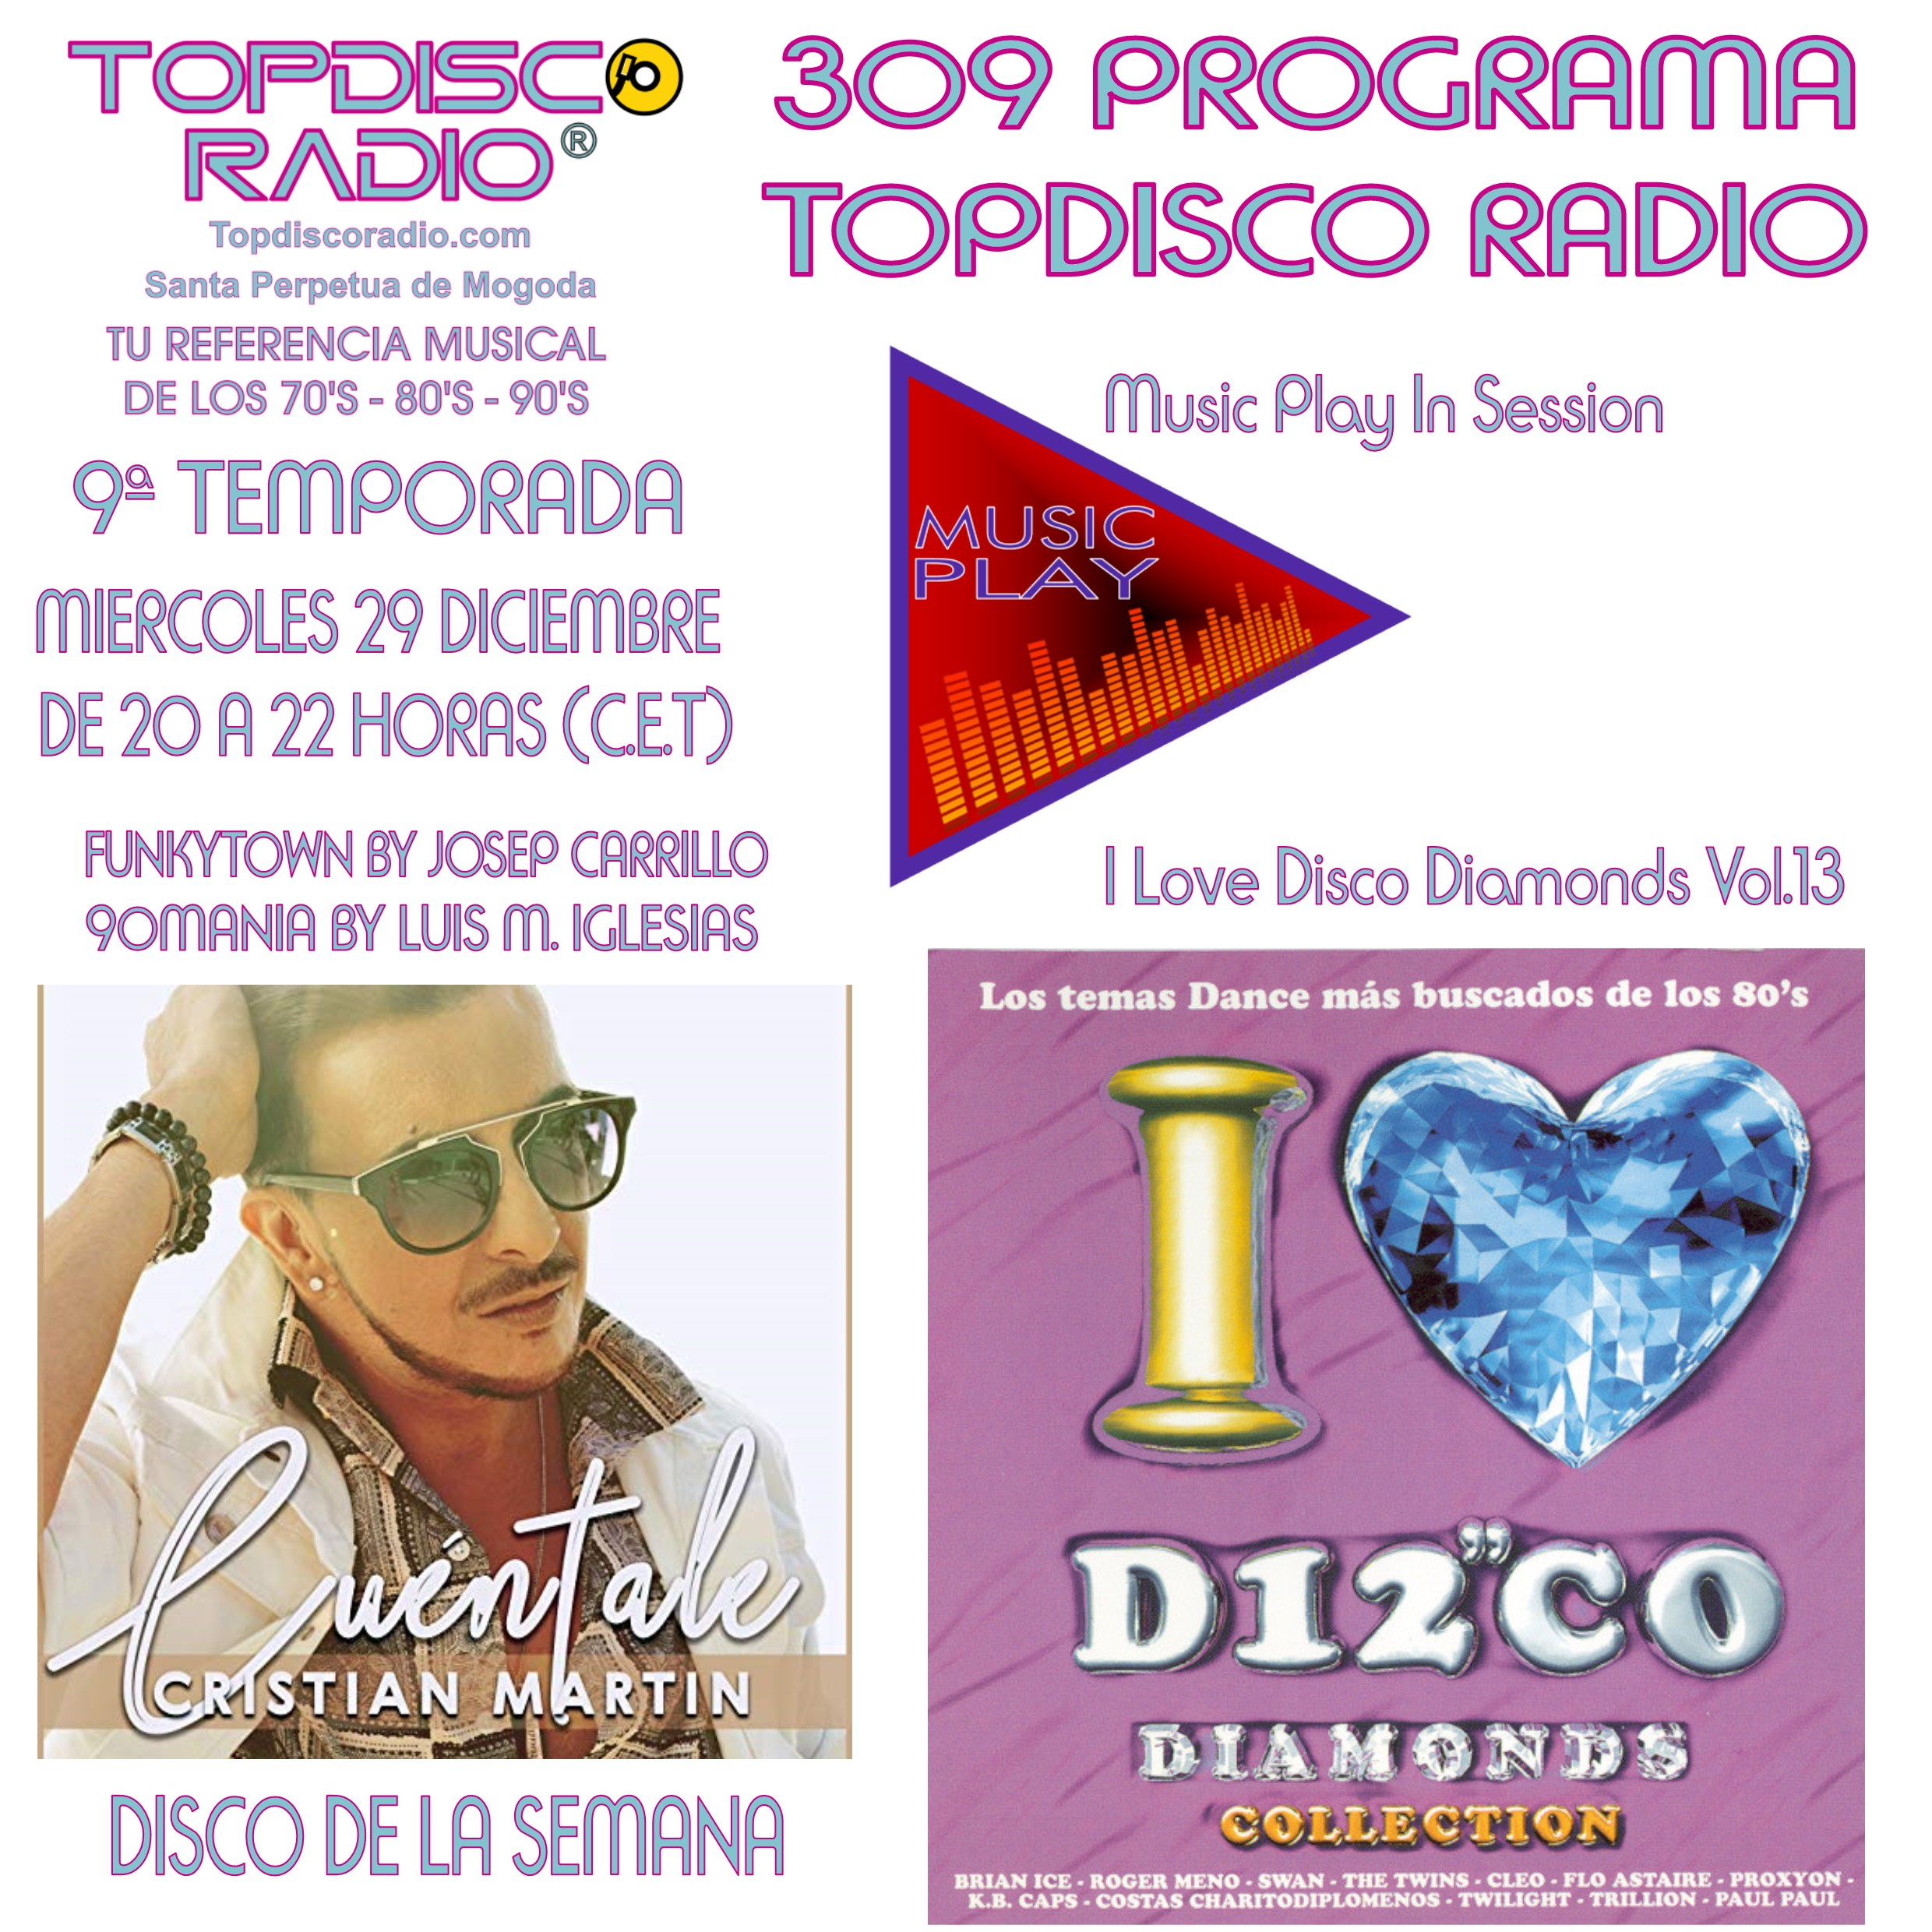 309 PROGRAMA TOPDISCO RADIO MUSIC PLAY I LOVE DISCO DIAMONDS VOL.13 IN SESSION - FUNKYTOWN - 90MANIA - 29.01.2020